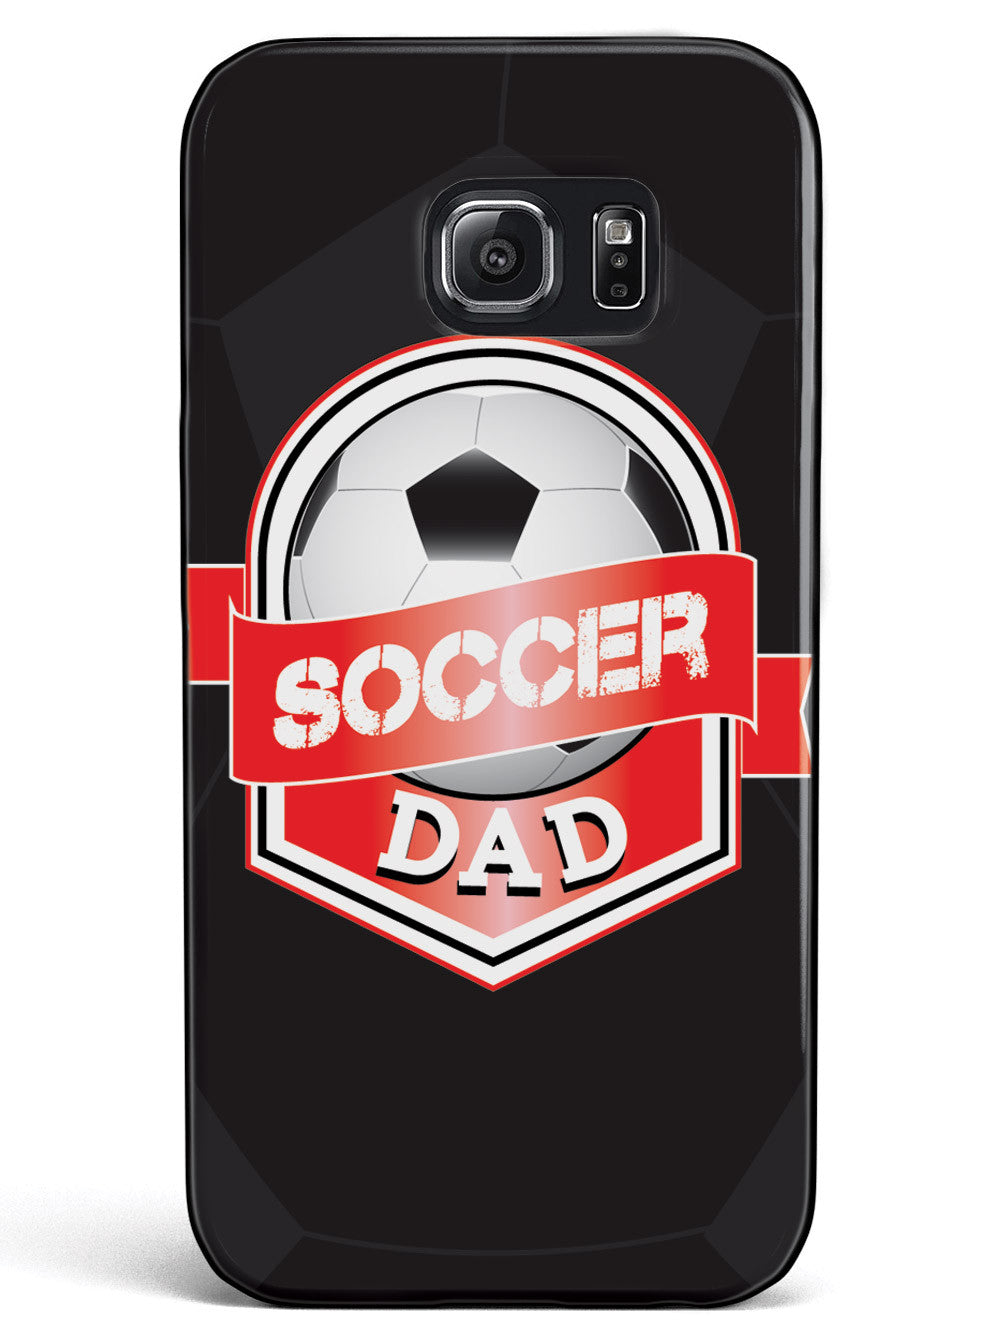 Soccer Dad Case